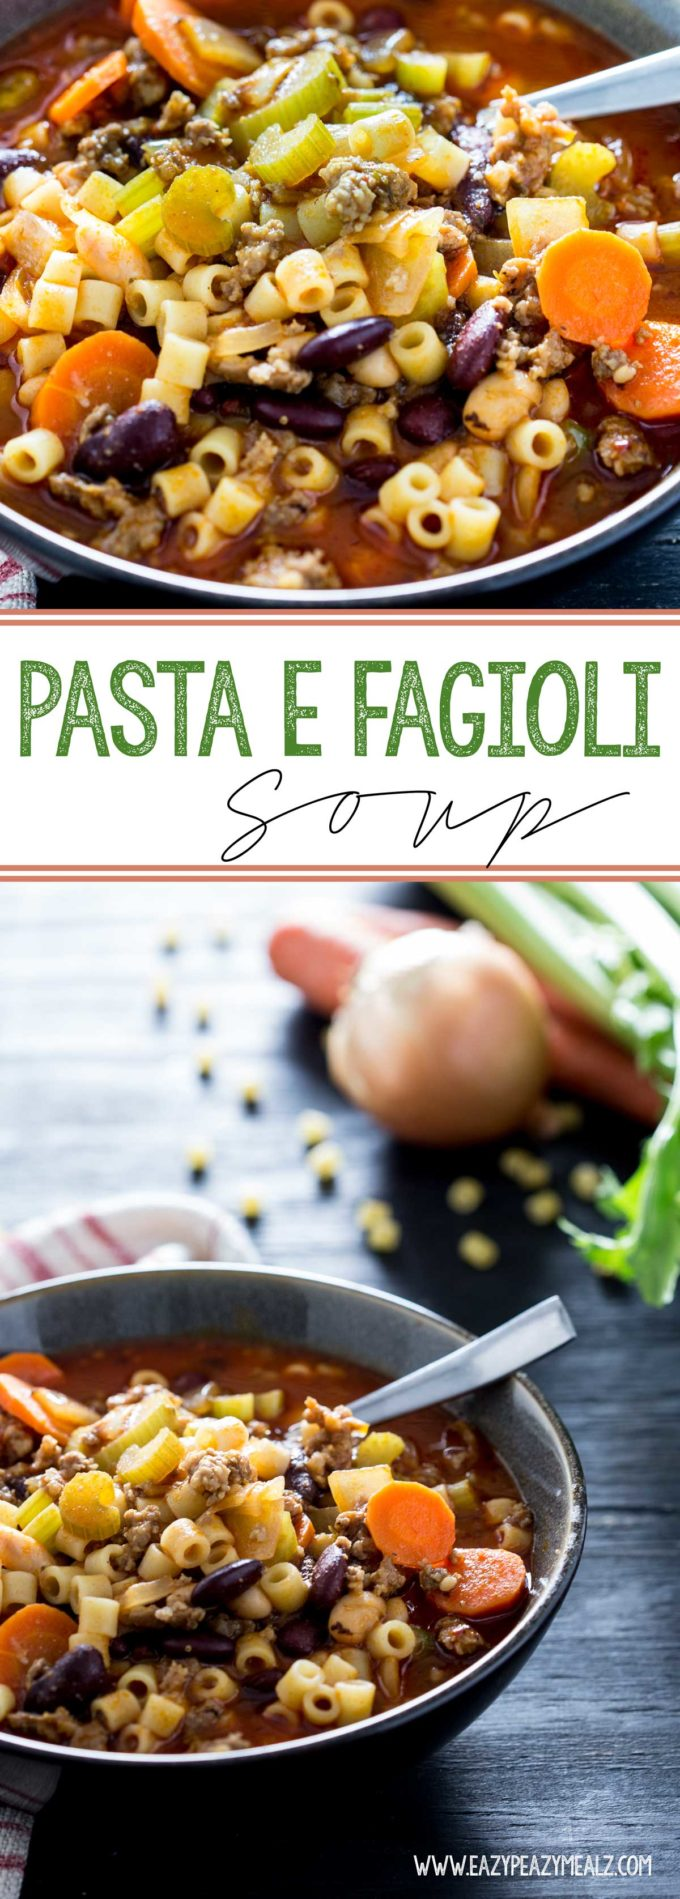 Pasta Fagioli Soup: This hearty, flavorful soup made from Italian Sausage, veggies, marinara base, pasta and beans can be on the table in under 30 minutes.